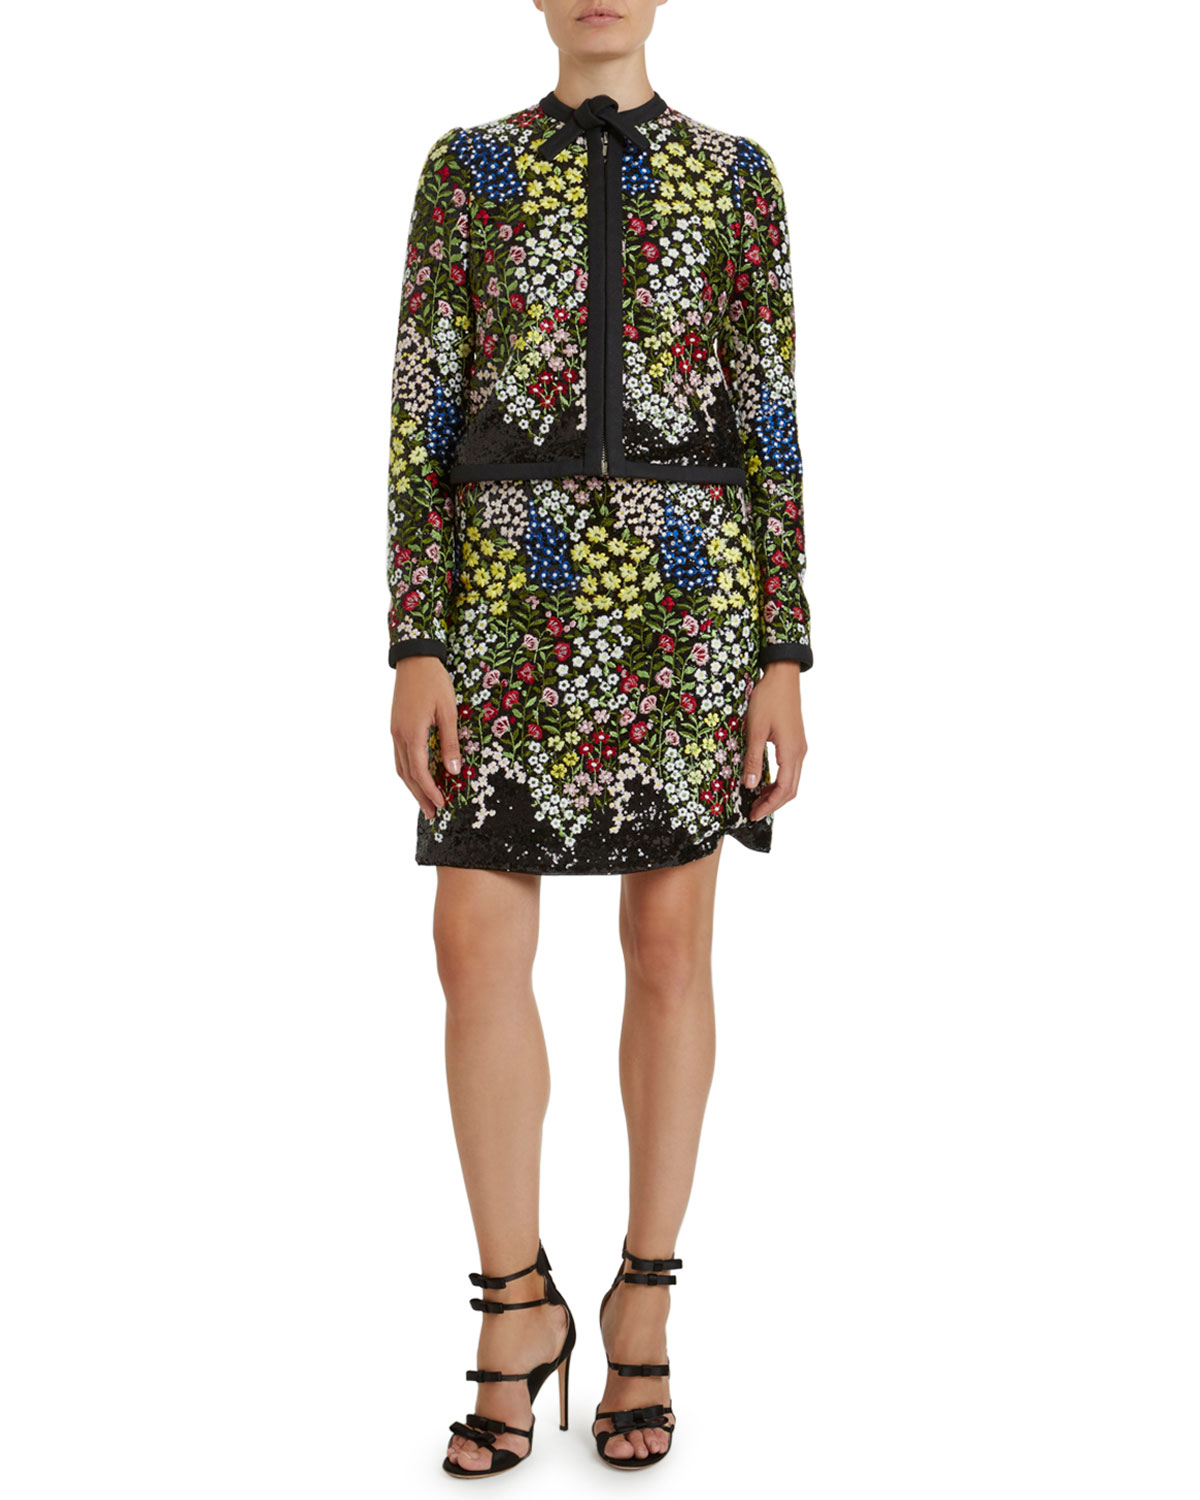 Giambattista Valli Jackets FLORAL EMBROIDERED SEQUINED JACKET